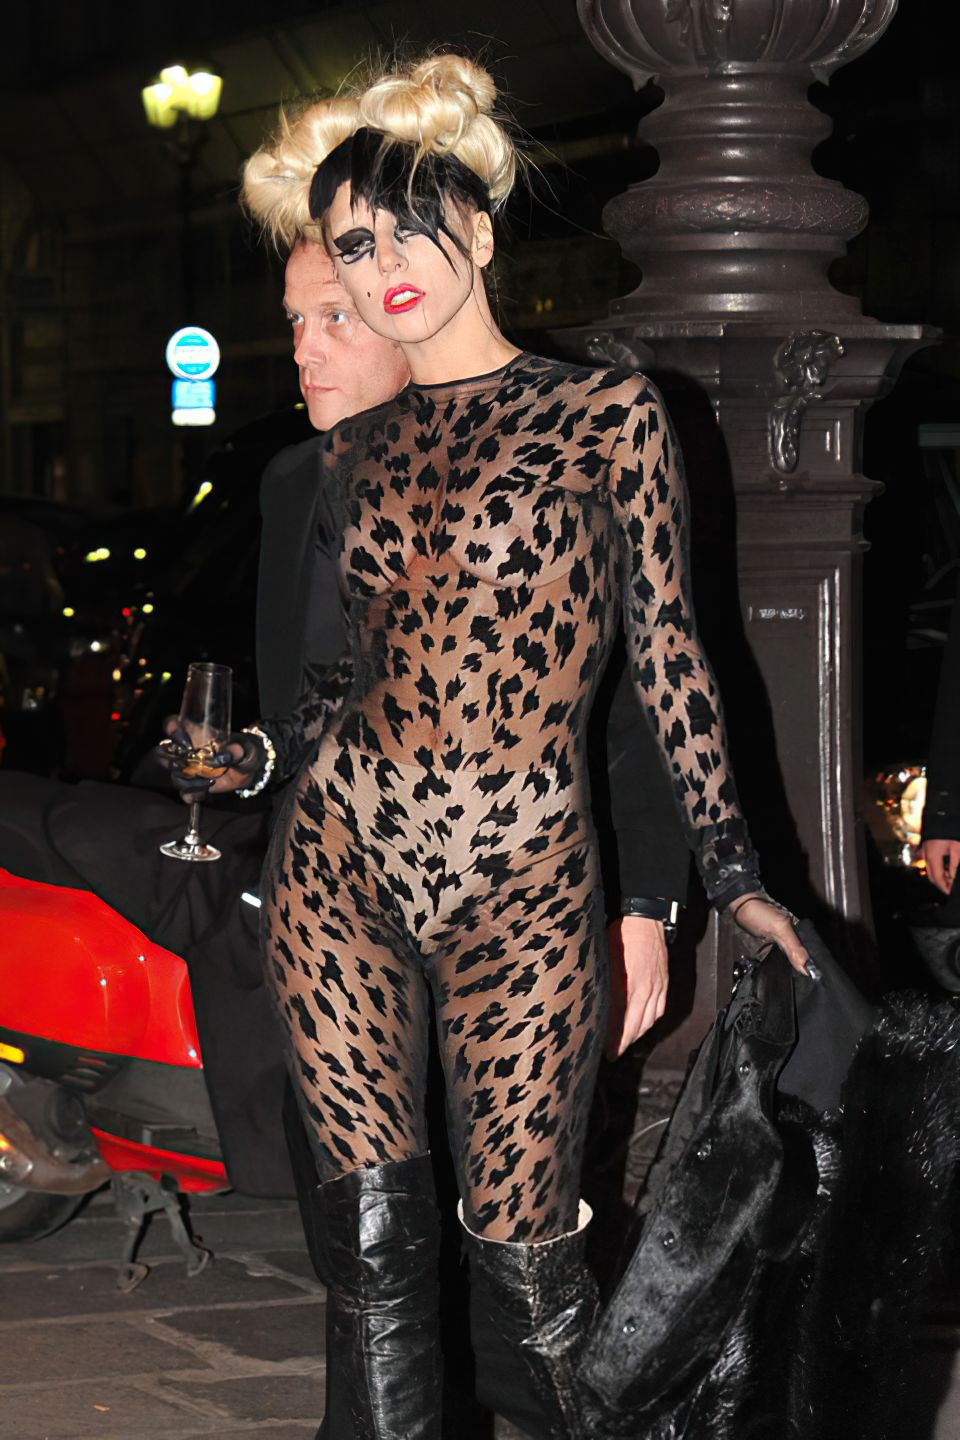 Lady Gaga Looks Hot in a See Through Outfit (4 Photos)